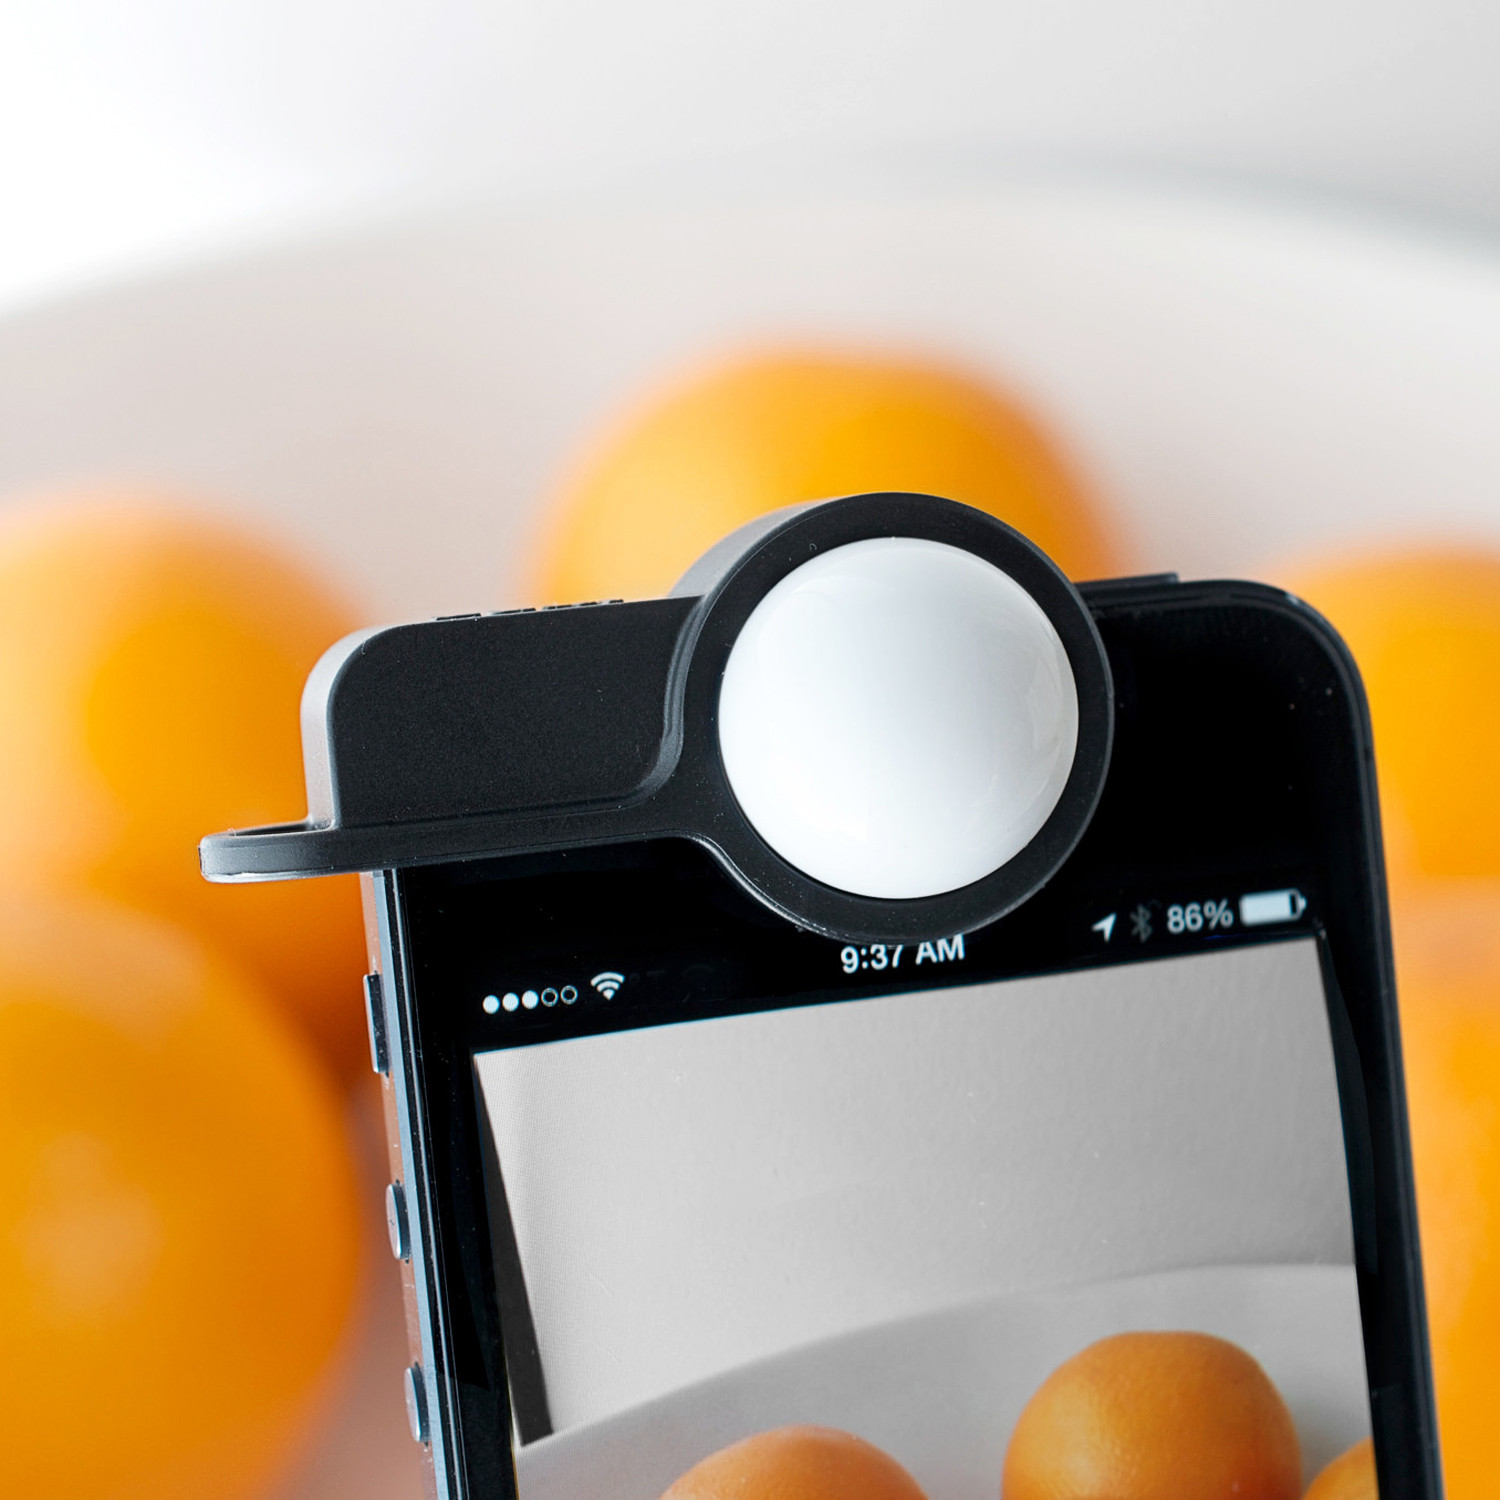 Luxi Light Meter Attachment For IPhone (iPhone 5/5S)